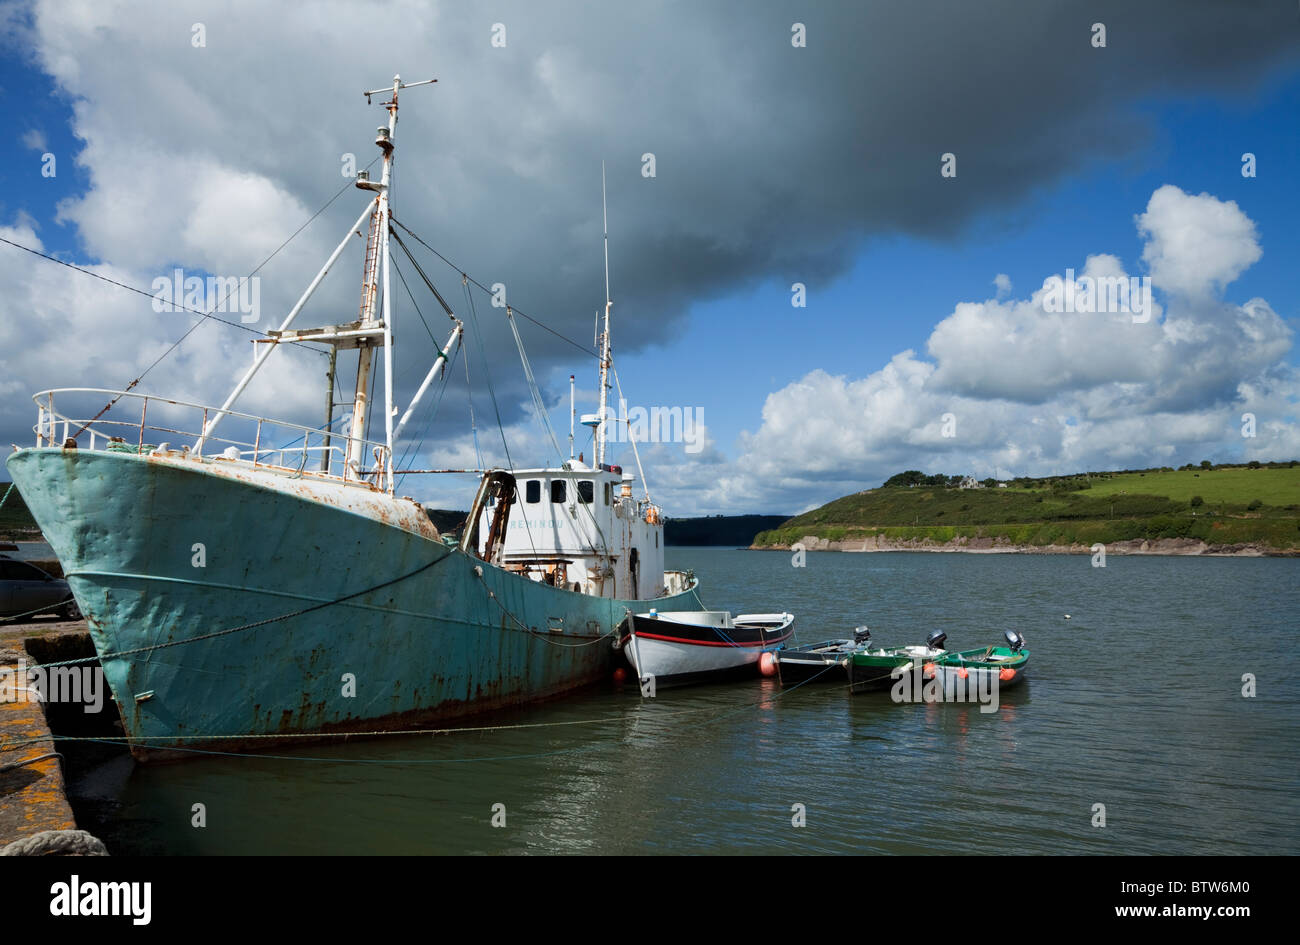 Boats Moored in the Fishing Harbour, Arthurstown, County Wexford, Ireland - Stock Image